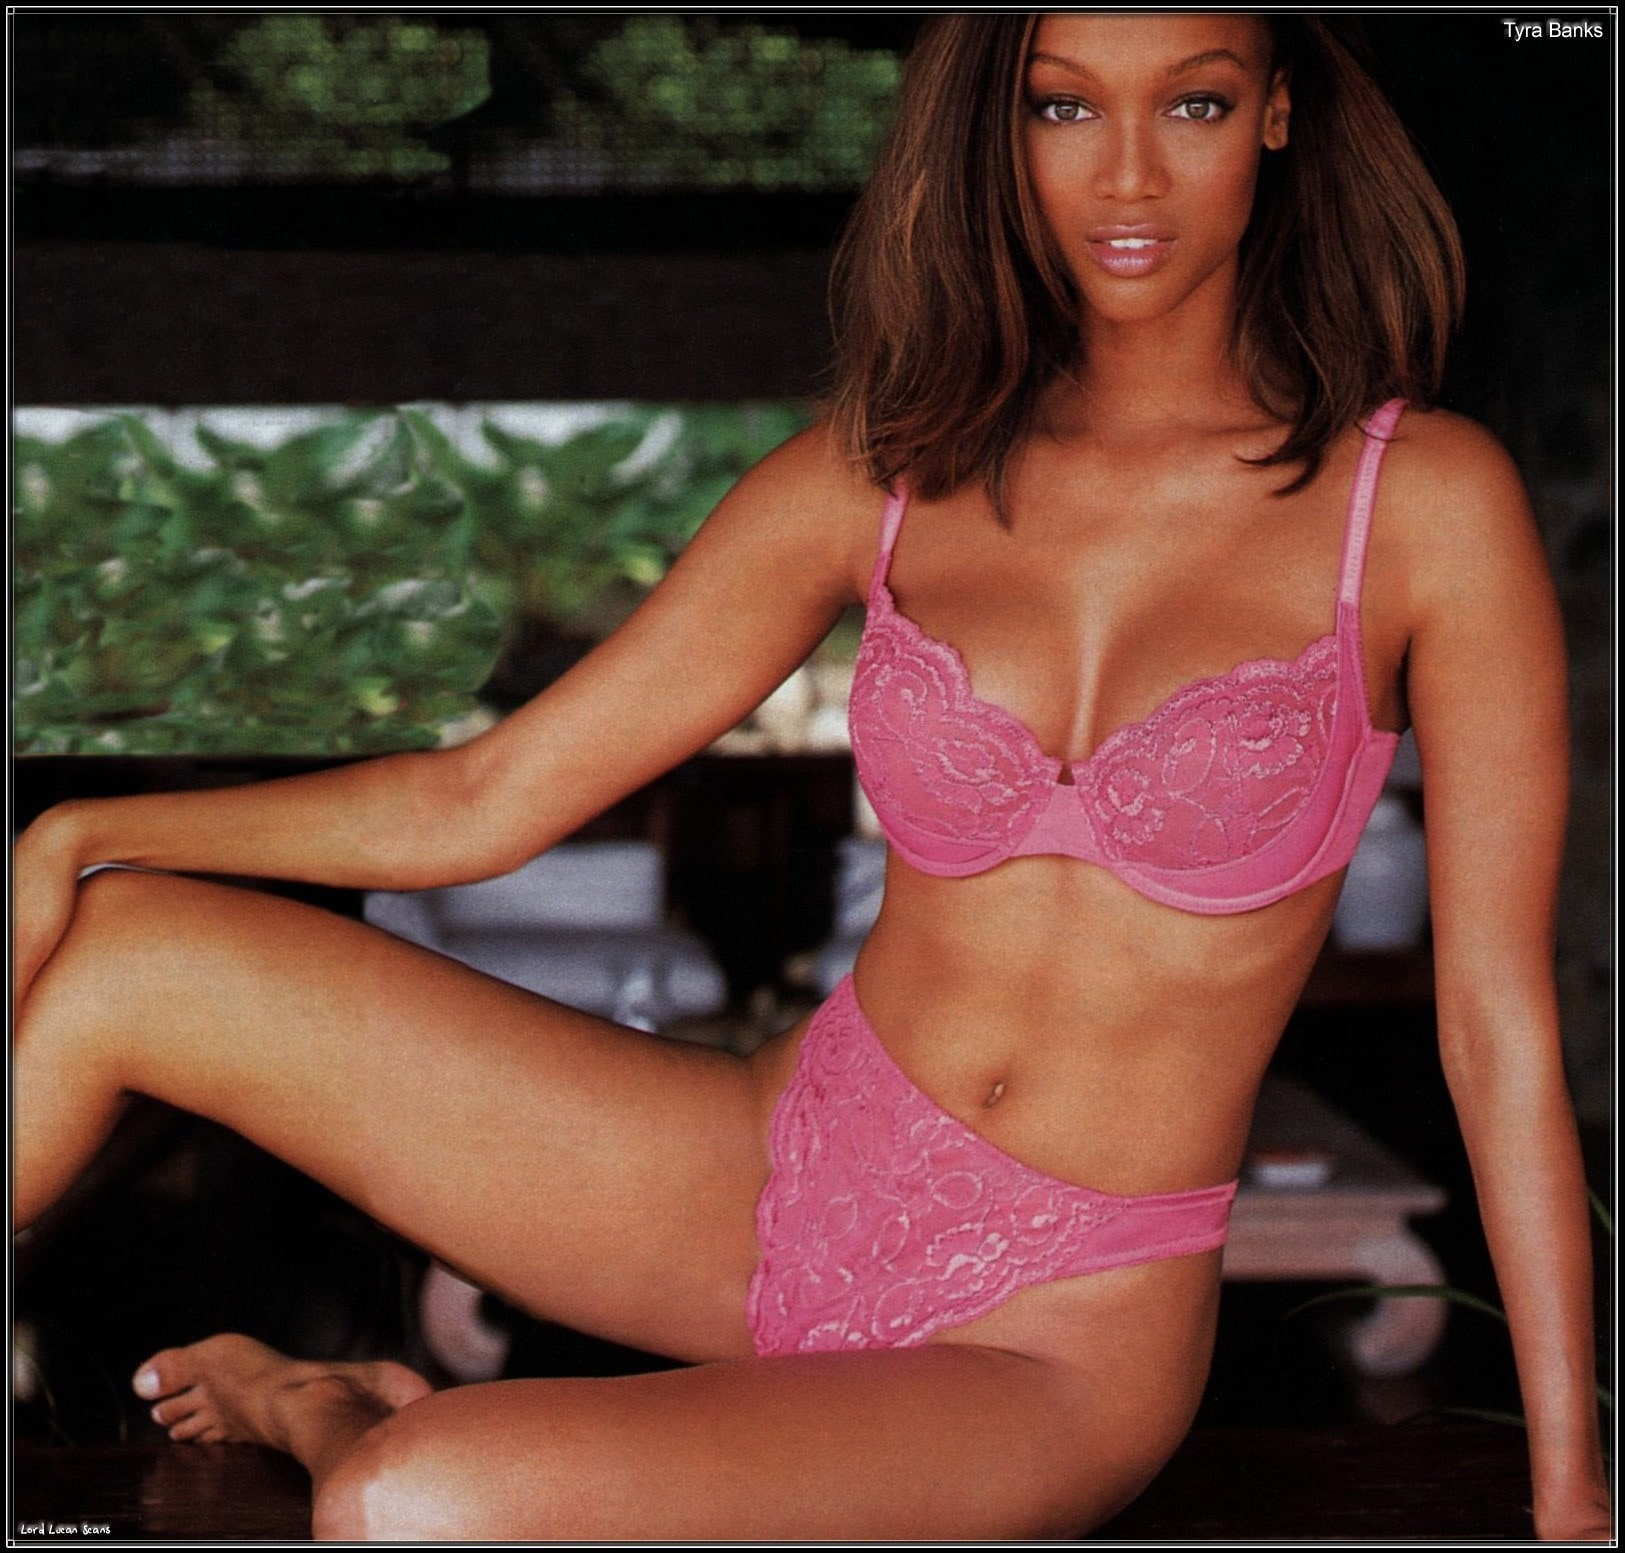 tyra banks sexy bare feet pictures